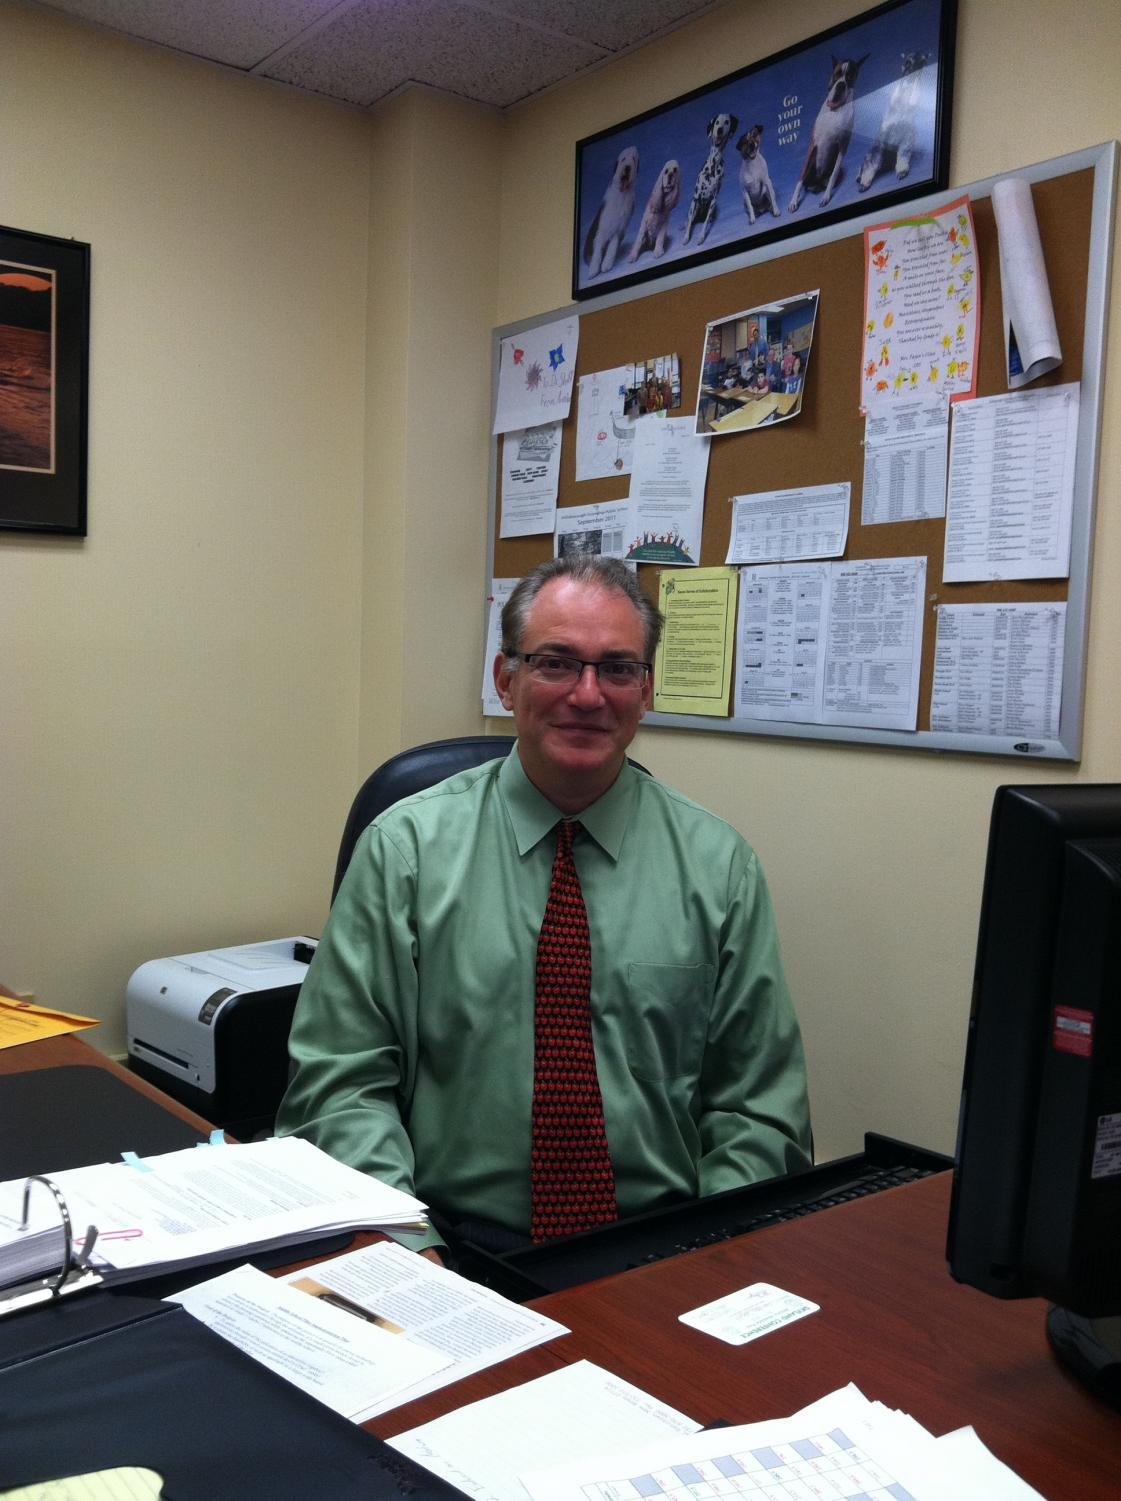 Dr. Schiff doing work at his desk where he's been leading the district since 2011.